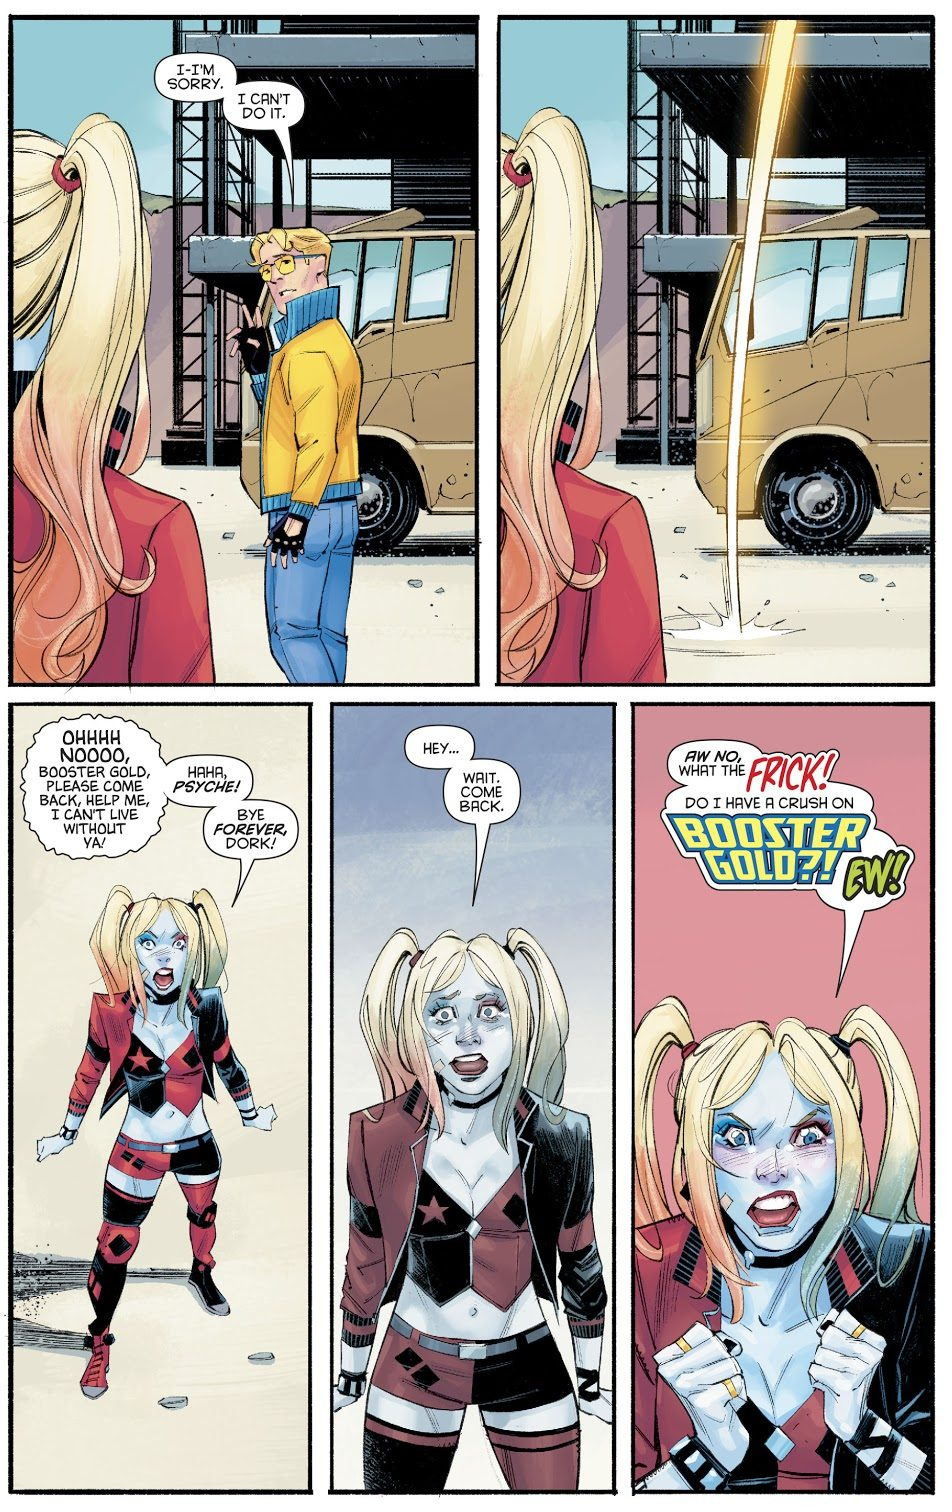 Harley Quinn Has A Crush On Booster Gold